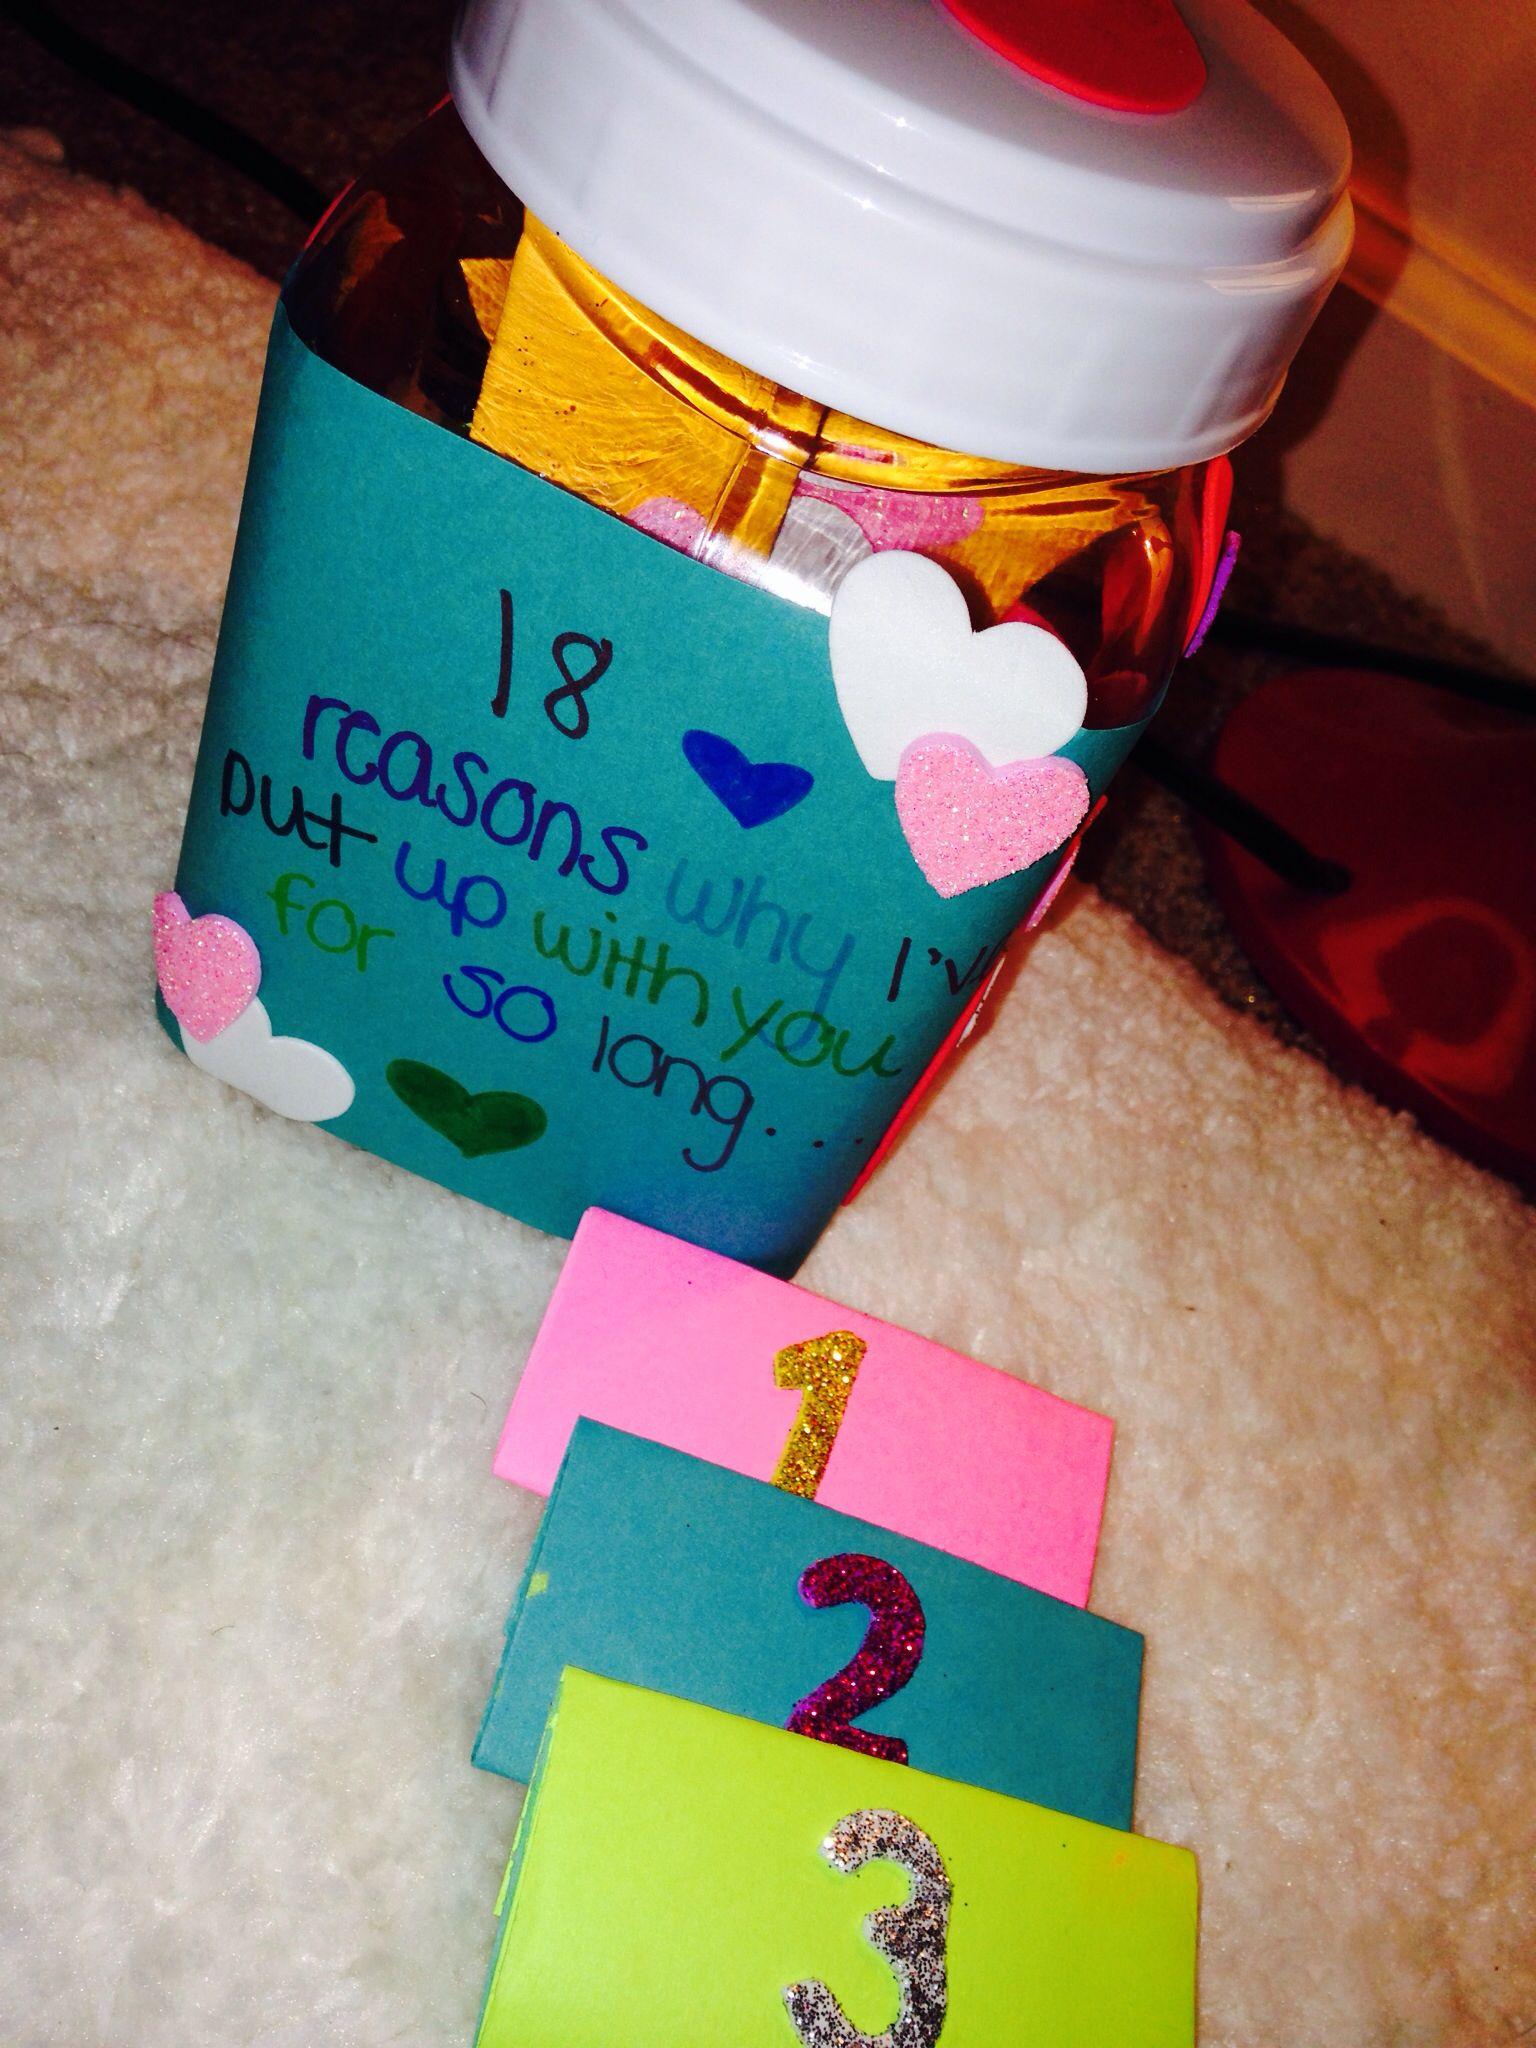 cute gifts for boyfriend 18 reasons why i 39 ve put up with